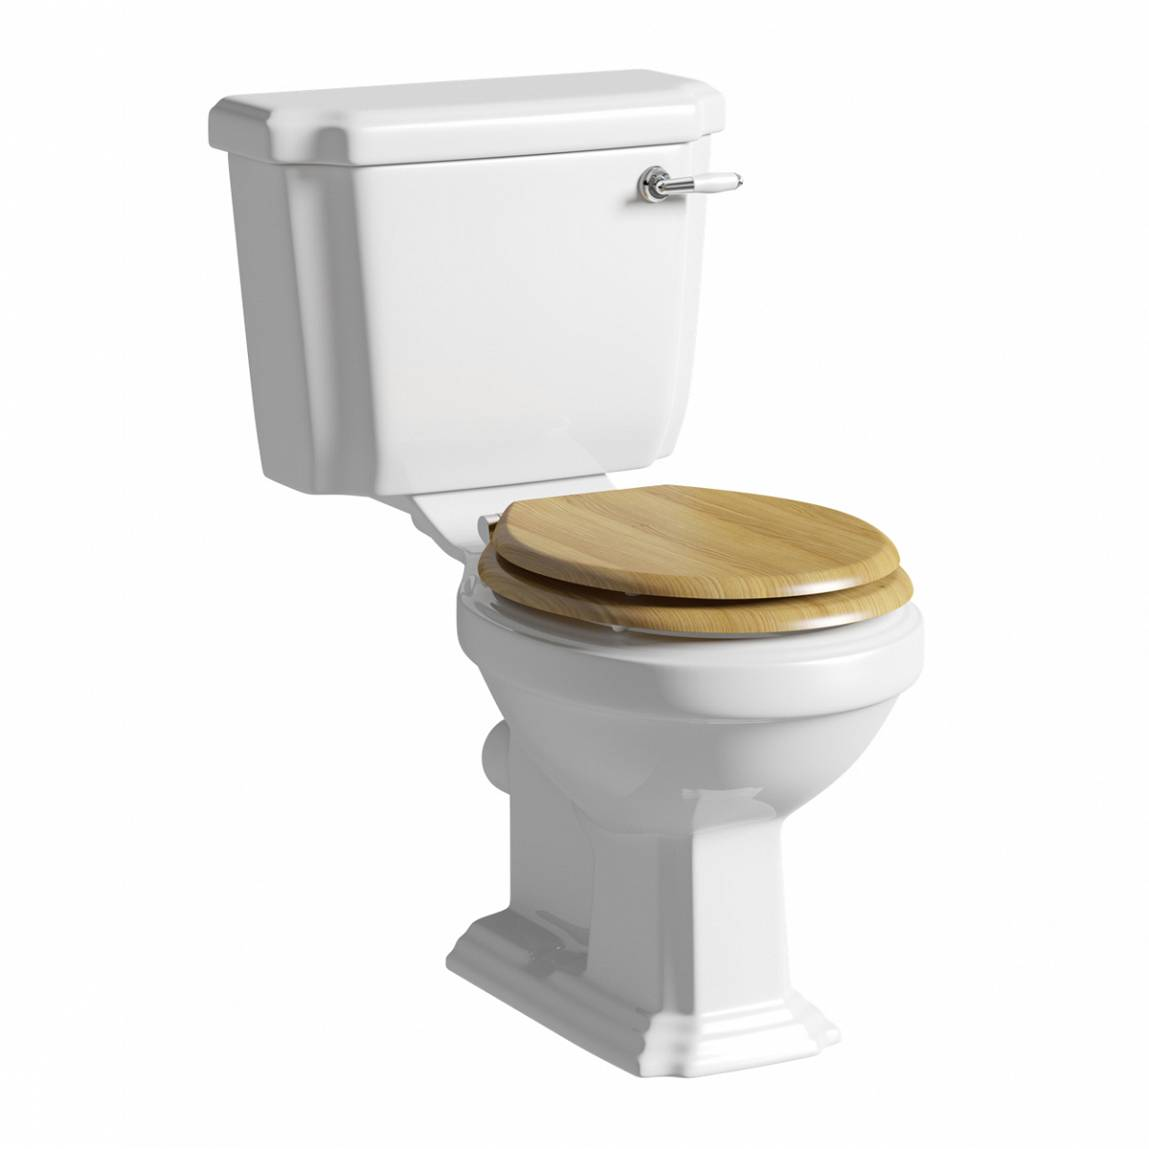 Image of Cavendish Close Coupled Toilet with Oak Effect Soft Close Seat and Ceramic Handle Flush